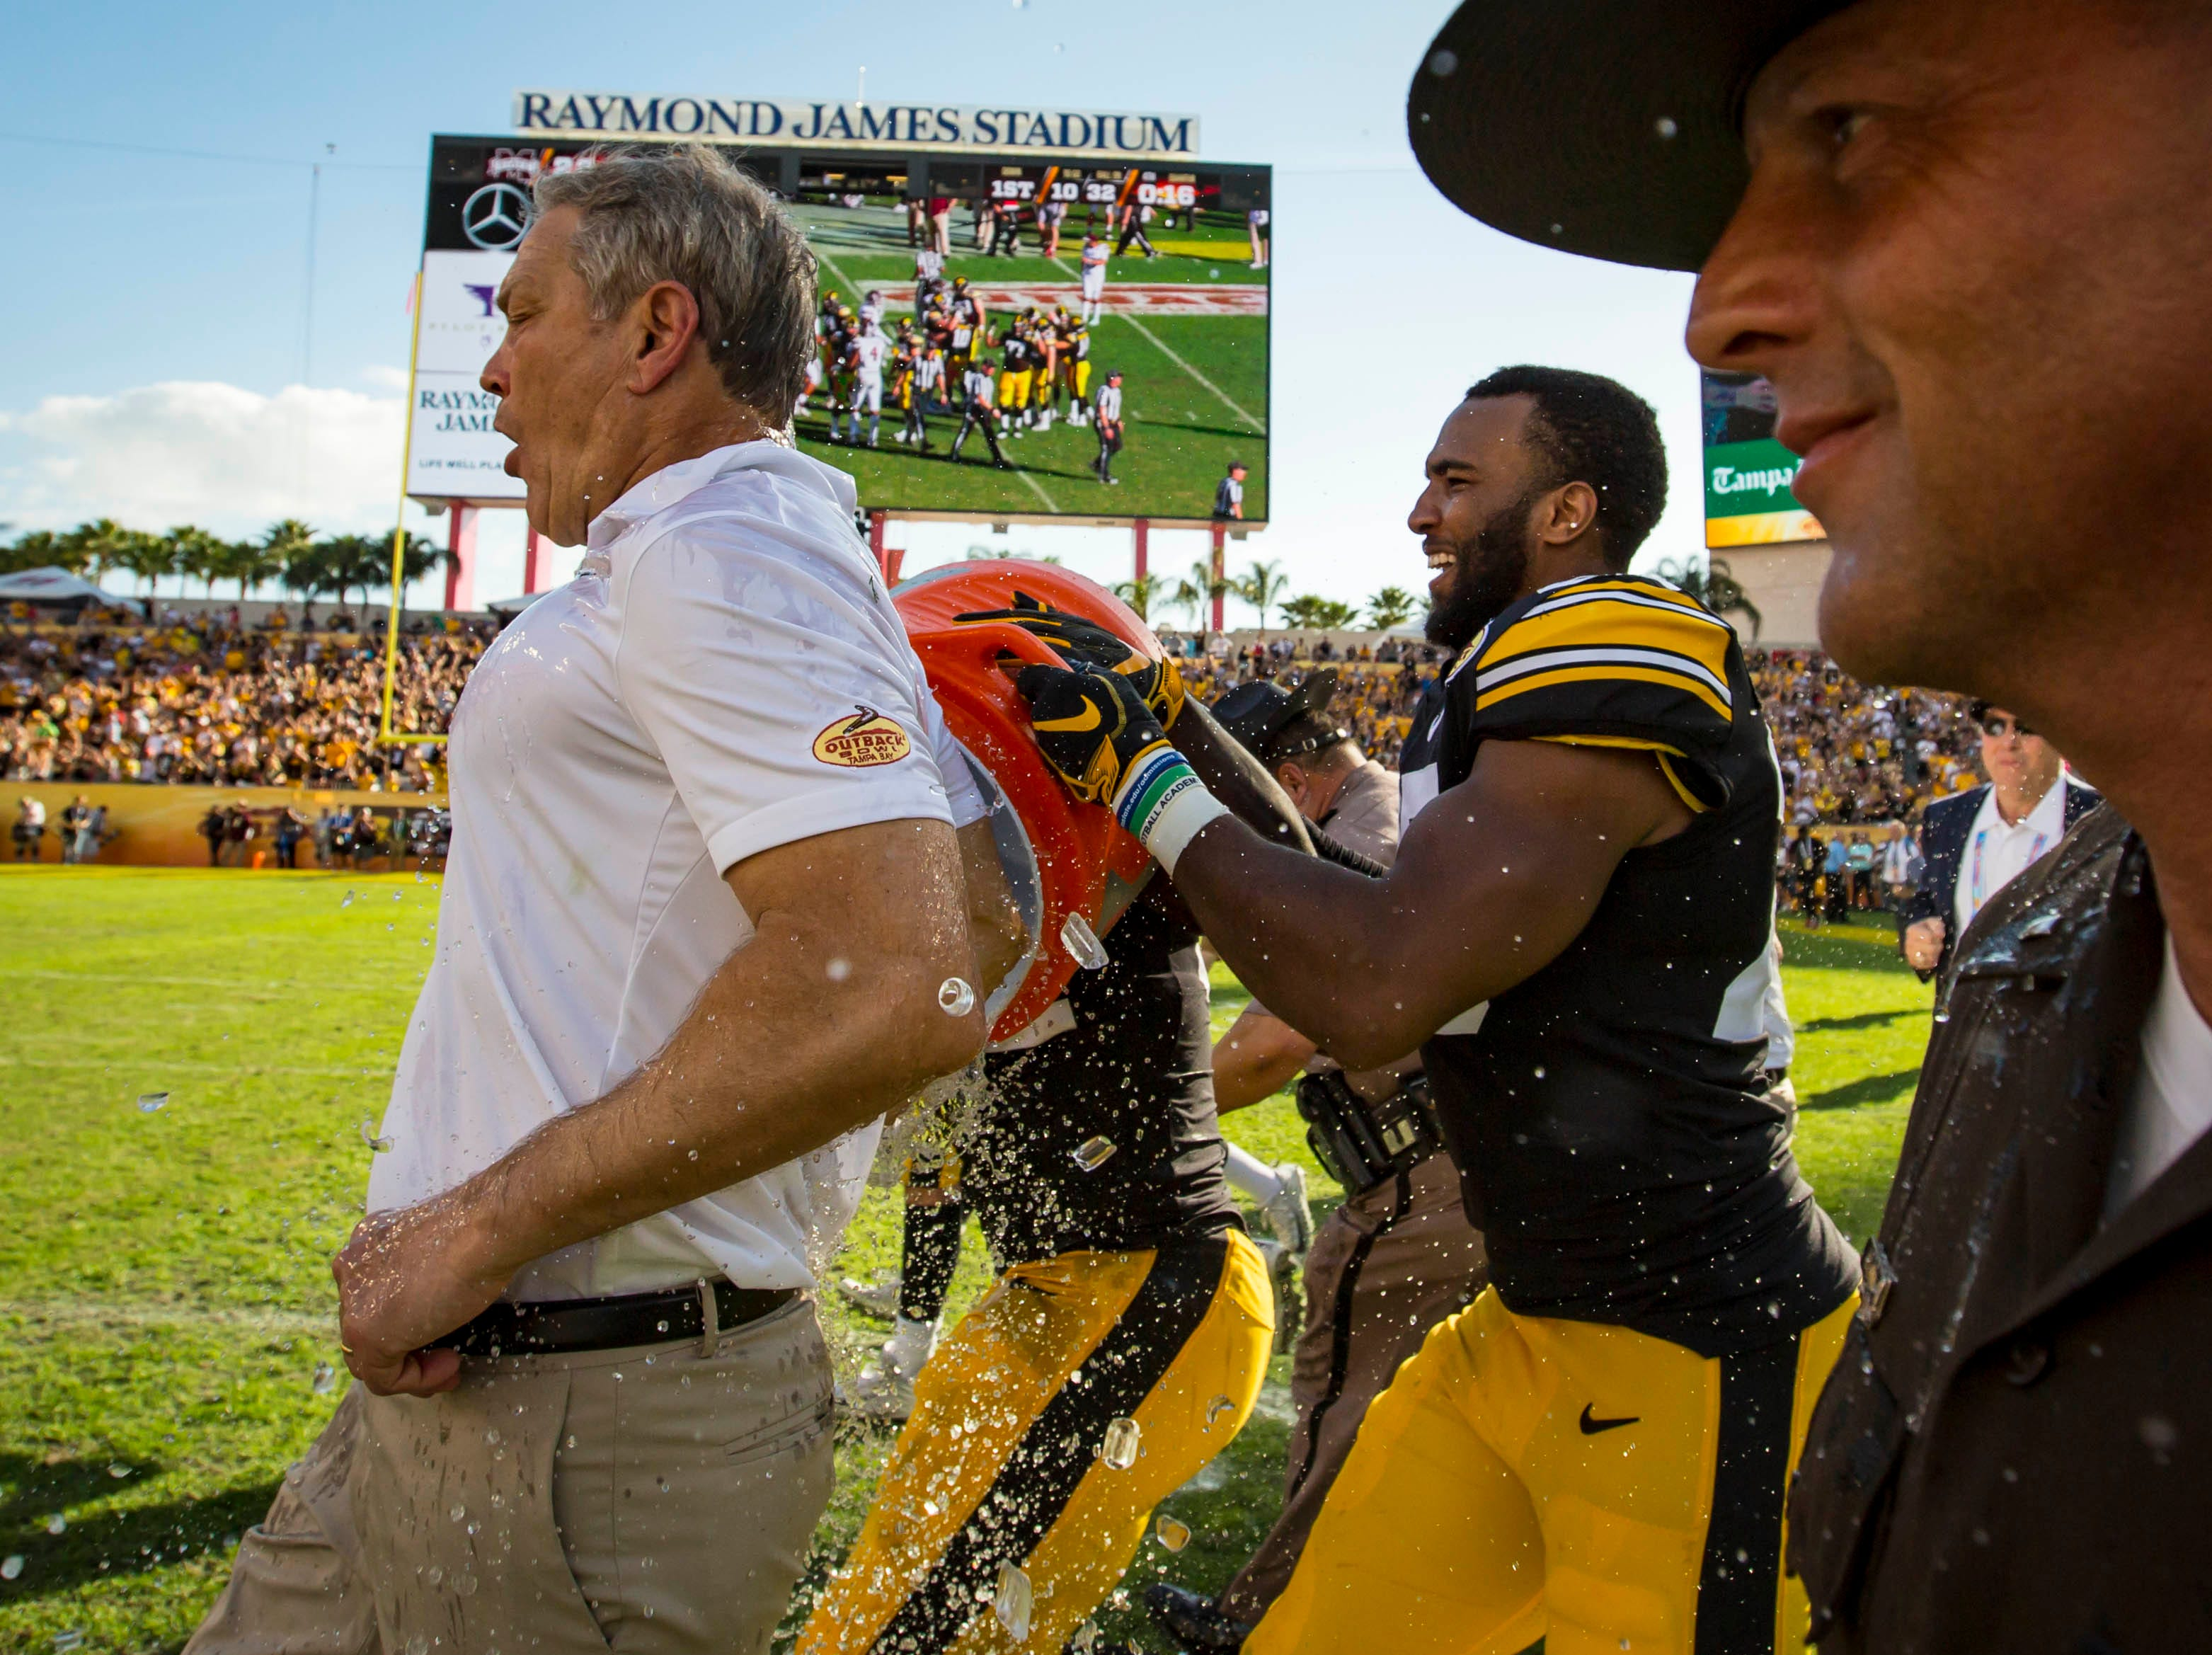 Head Coach Kirk Ferentz is spalsh with water after winning the Outback Bowl Tues., Jan. 1, 2019, at Raymond James Stadium in Tampa, Florida. Iowa defeated Mississippi State 27-22.